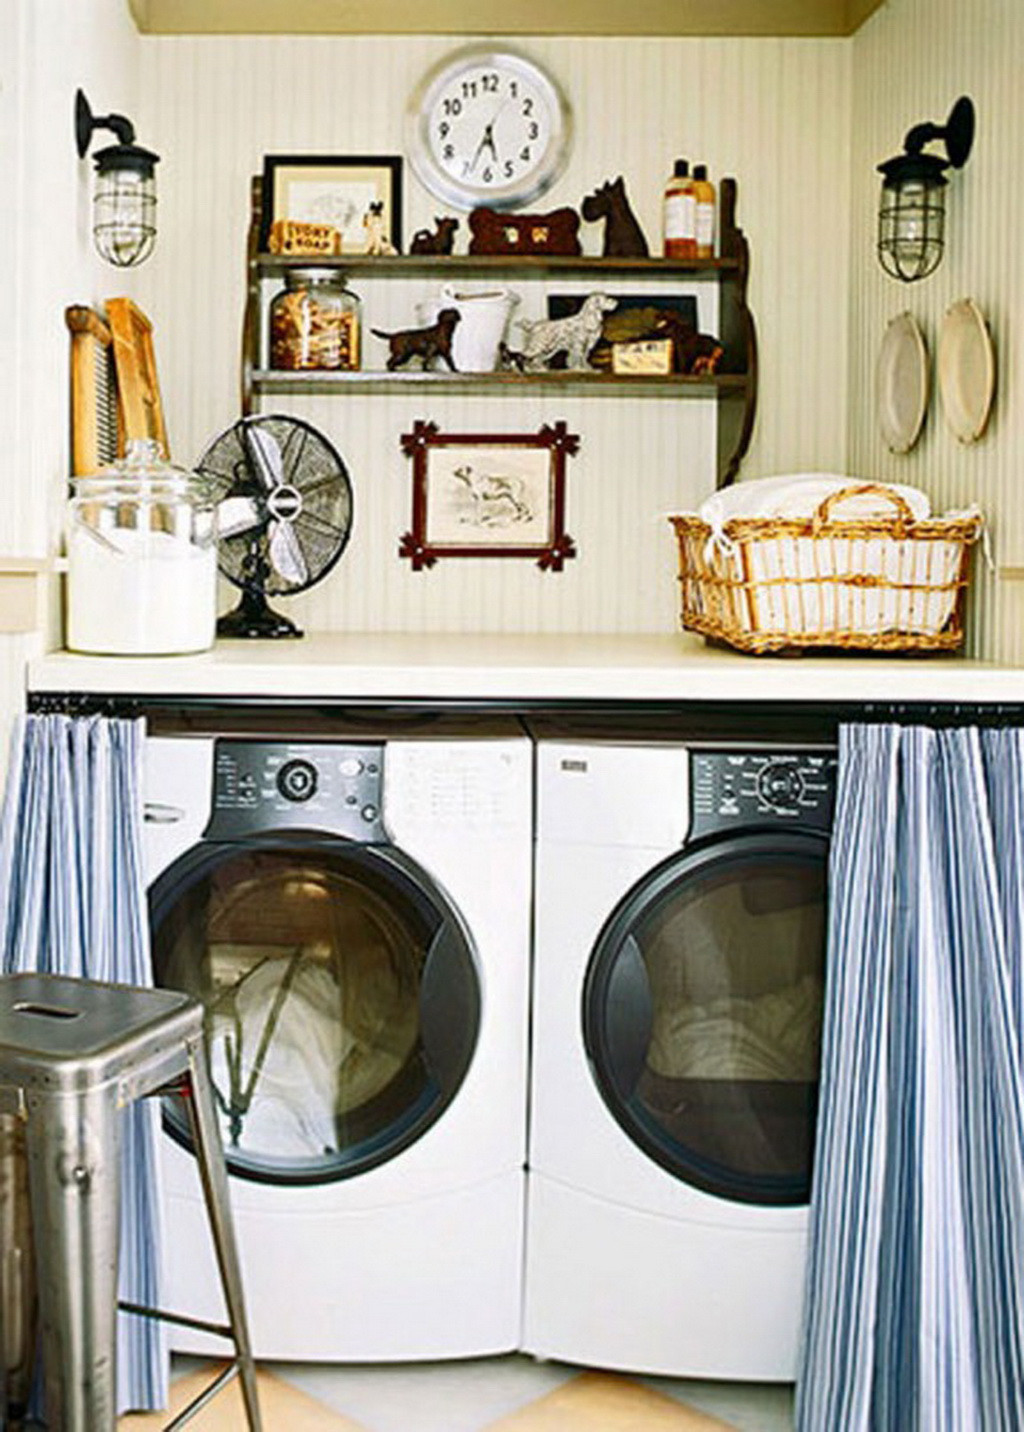 Best ideas about Laundry Room Decor . Save or Pin Home Interior Design for make Small Laundry Room Now.